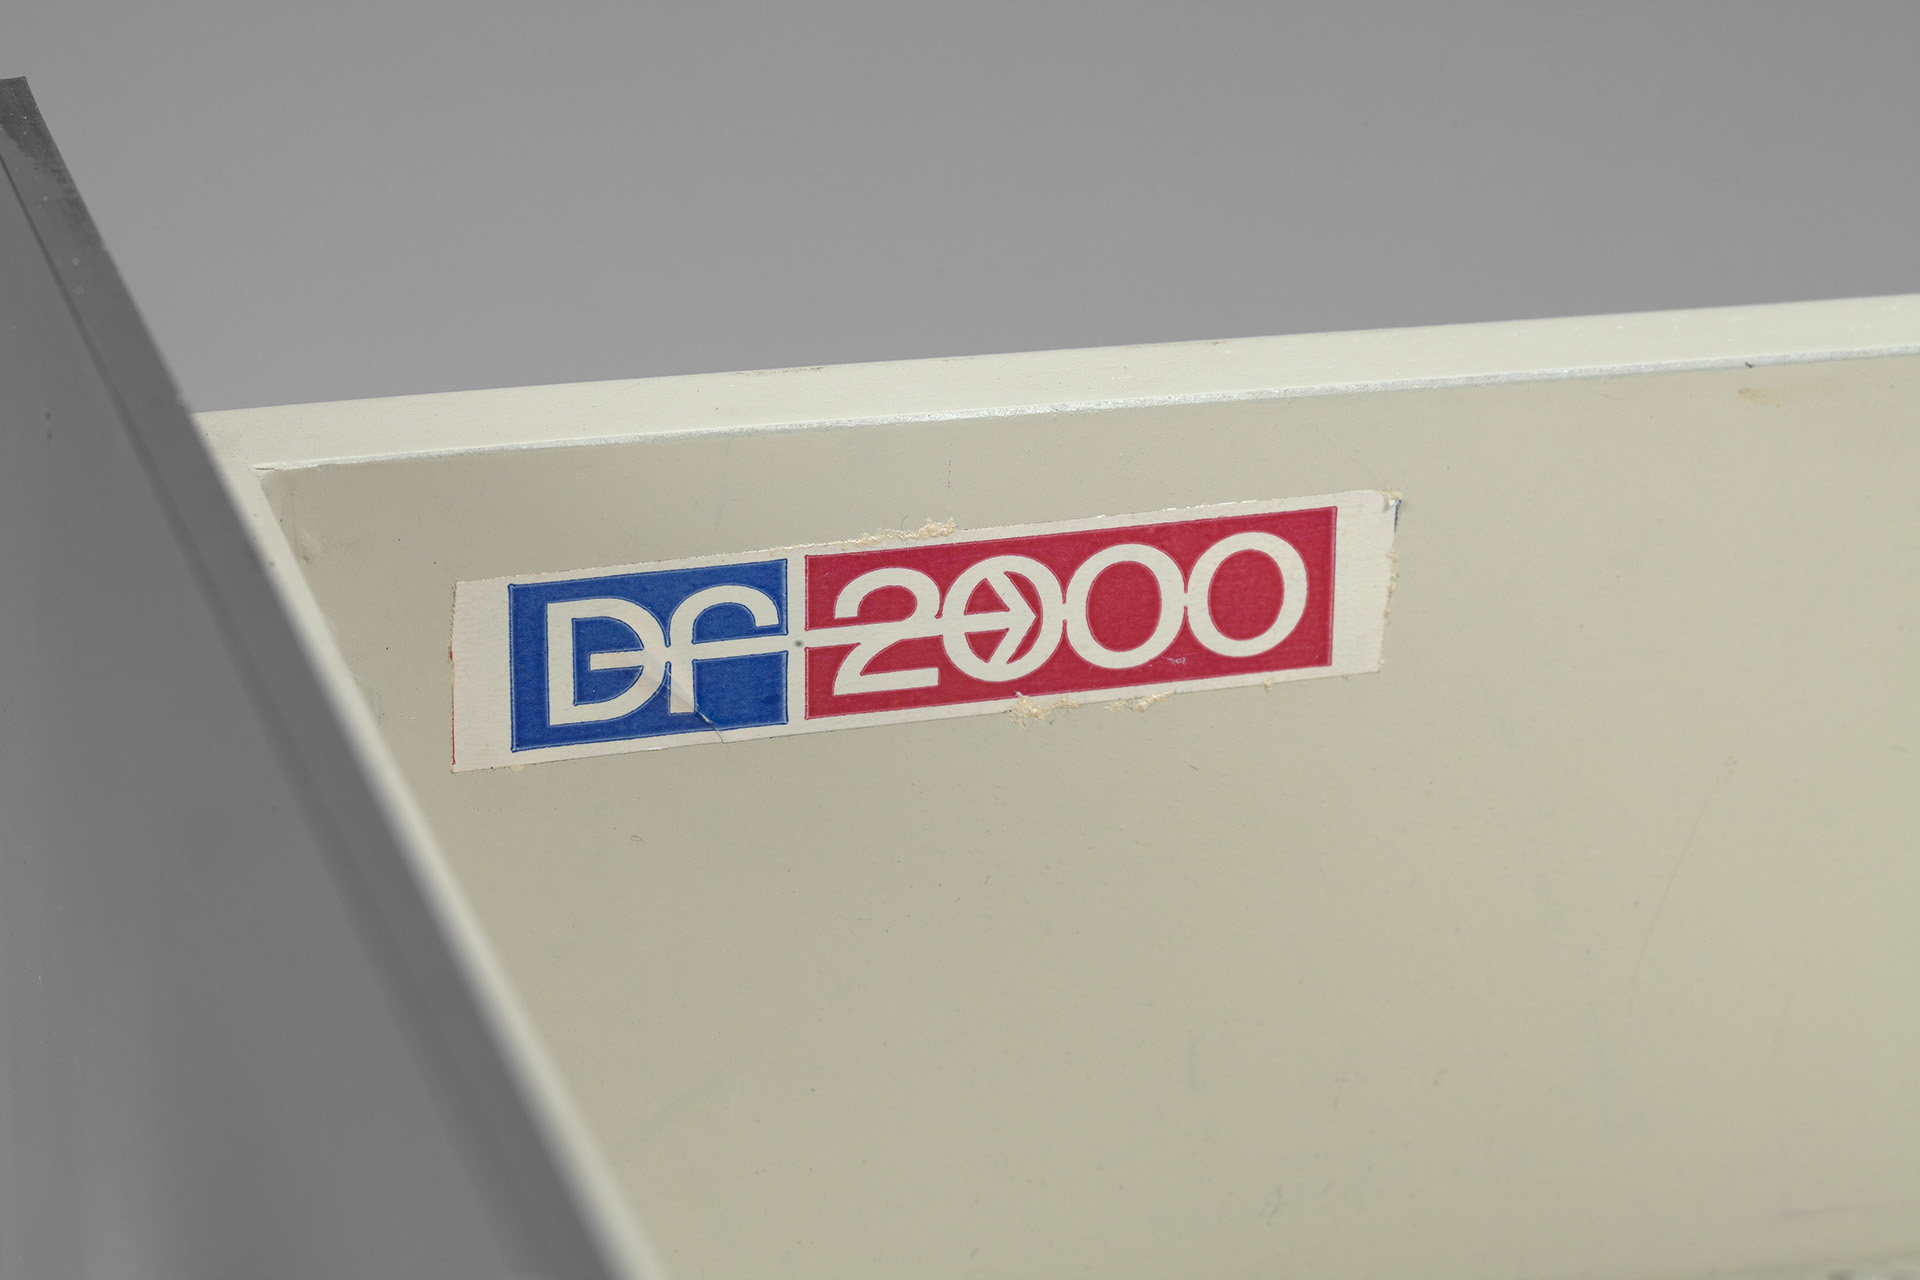 DF - 2000 Chest of Drawers